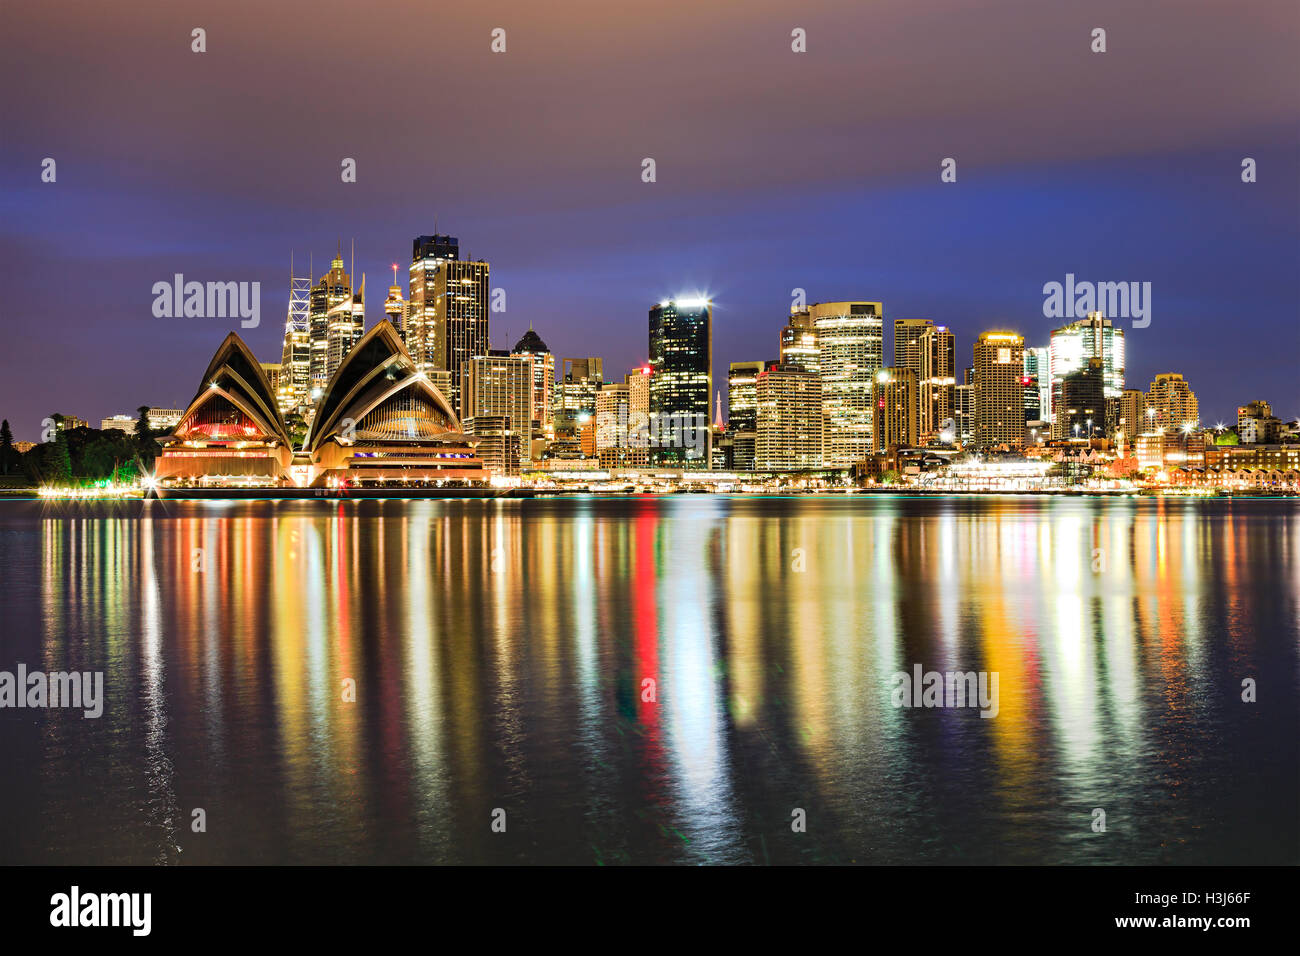 Sydney city CBD landmarks across harbour waters at sunrise brightly illuminated reflecting lights in blurred water. - Stock Image